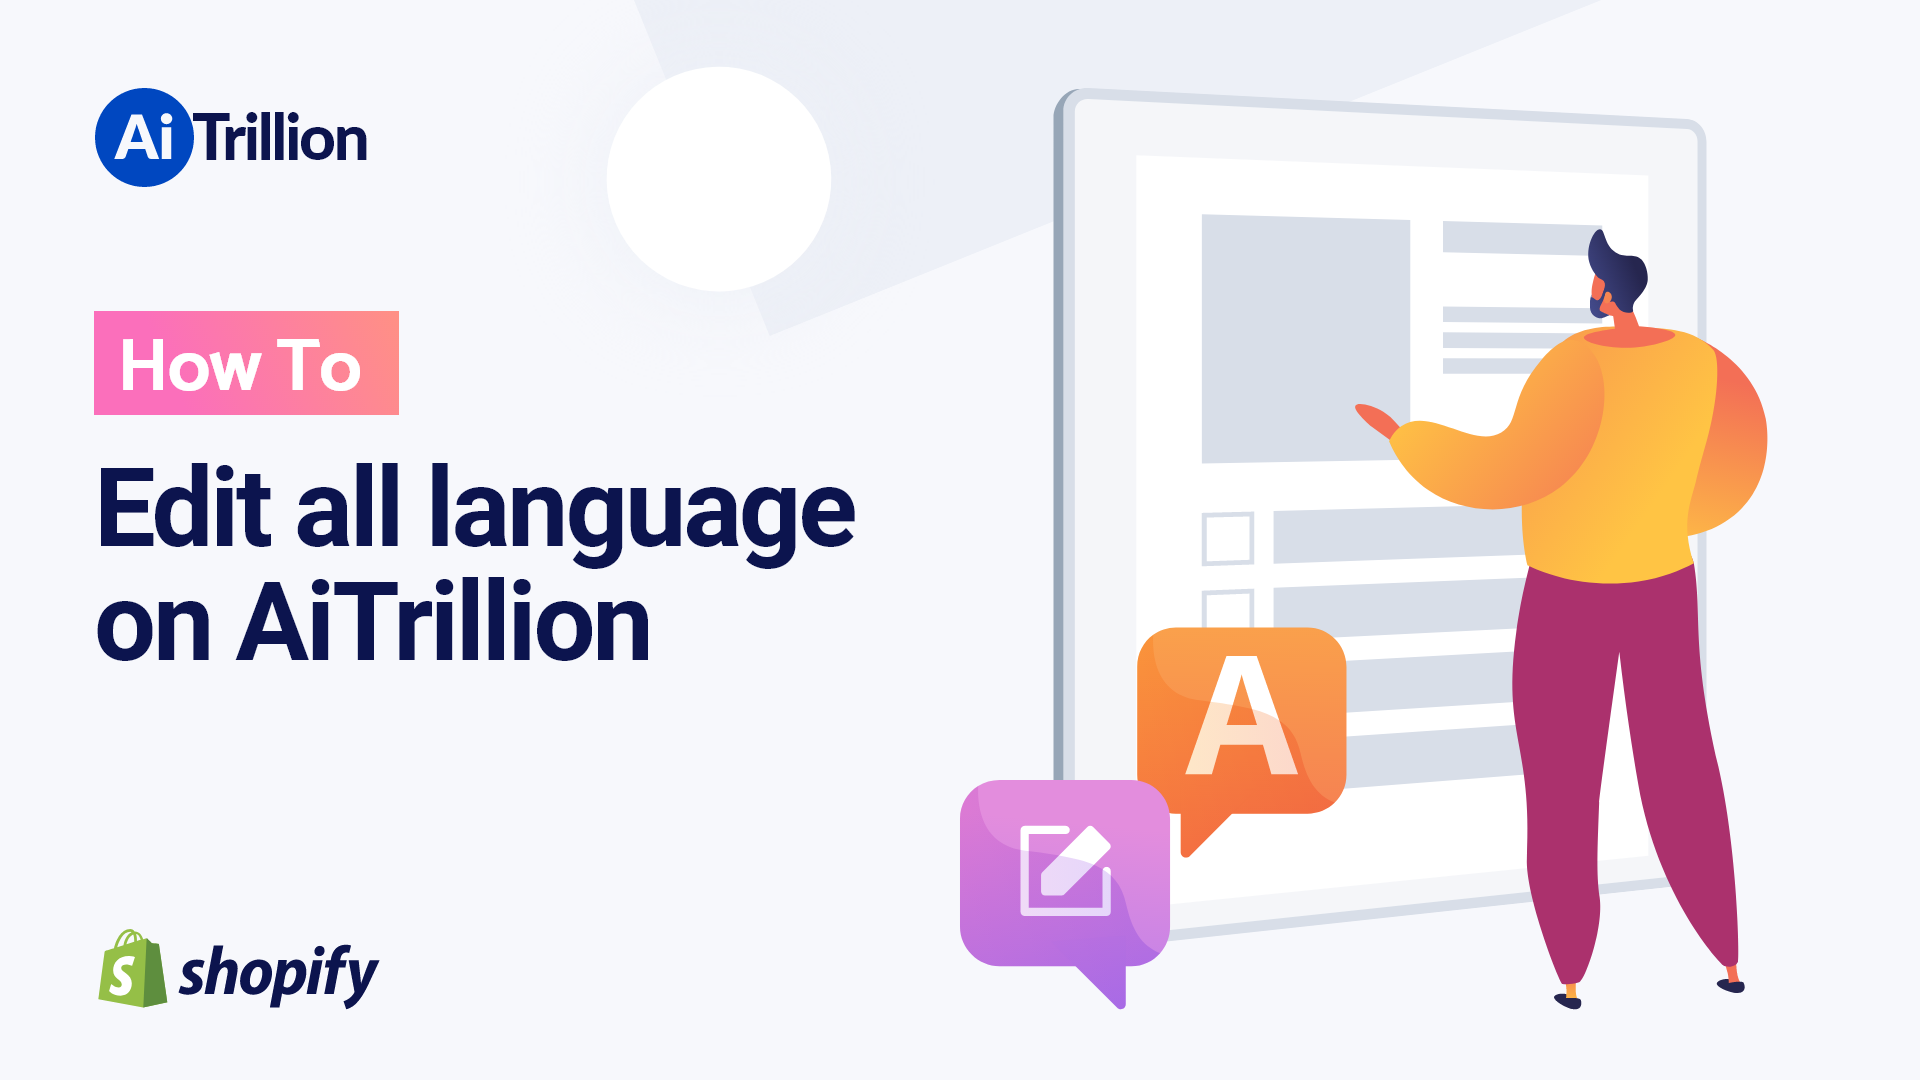 How To Edit all language on AiTrillion